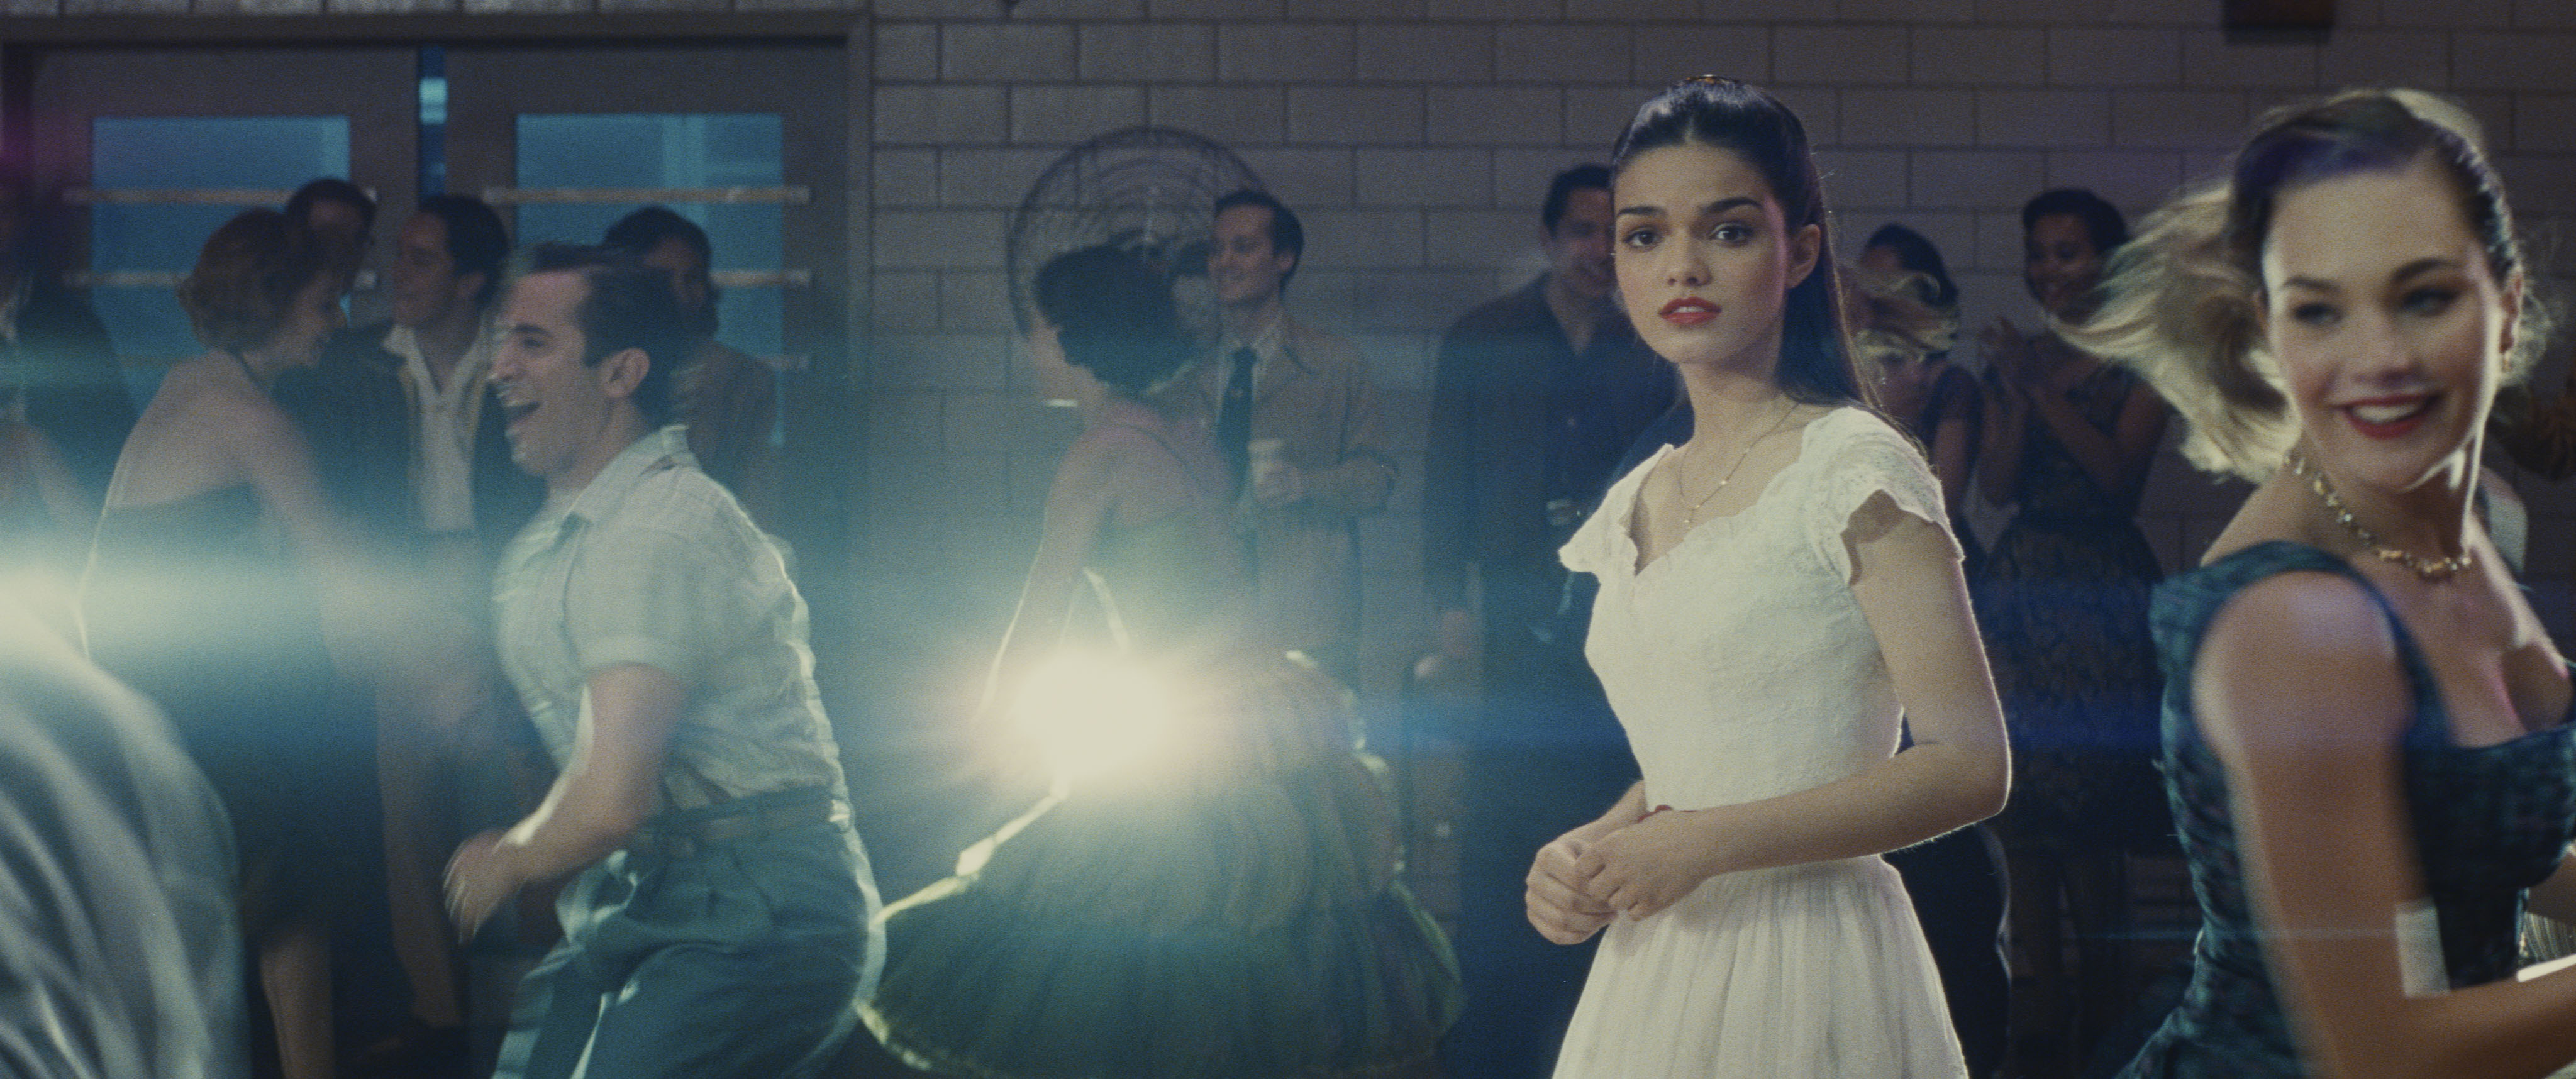 New Trailer, Poster and Stills for Steven Spielberg's 'West Side Story' - Image 6